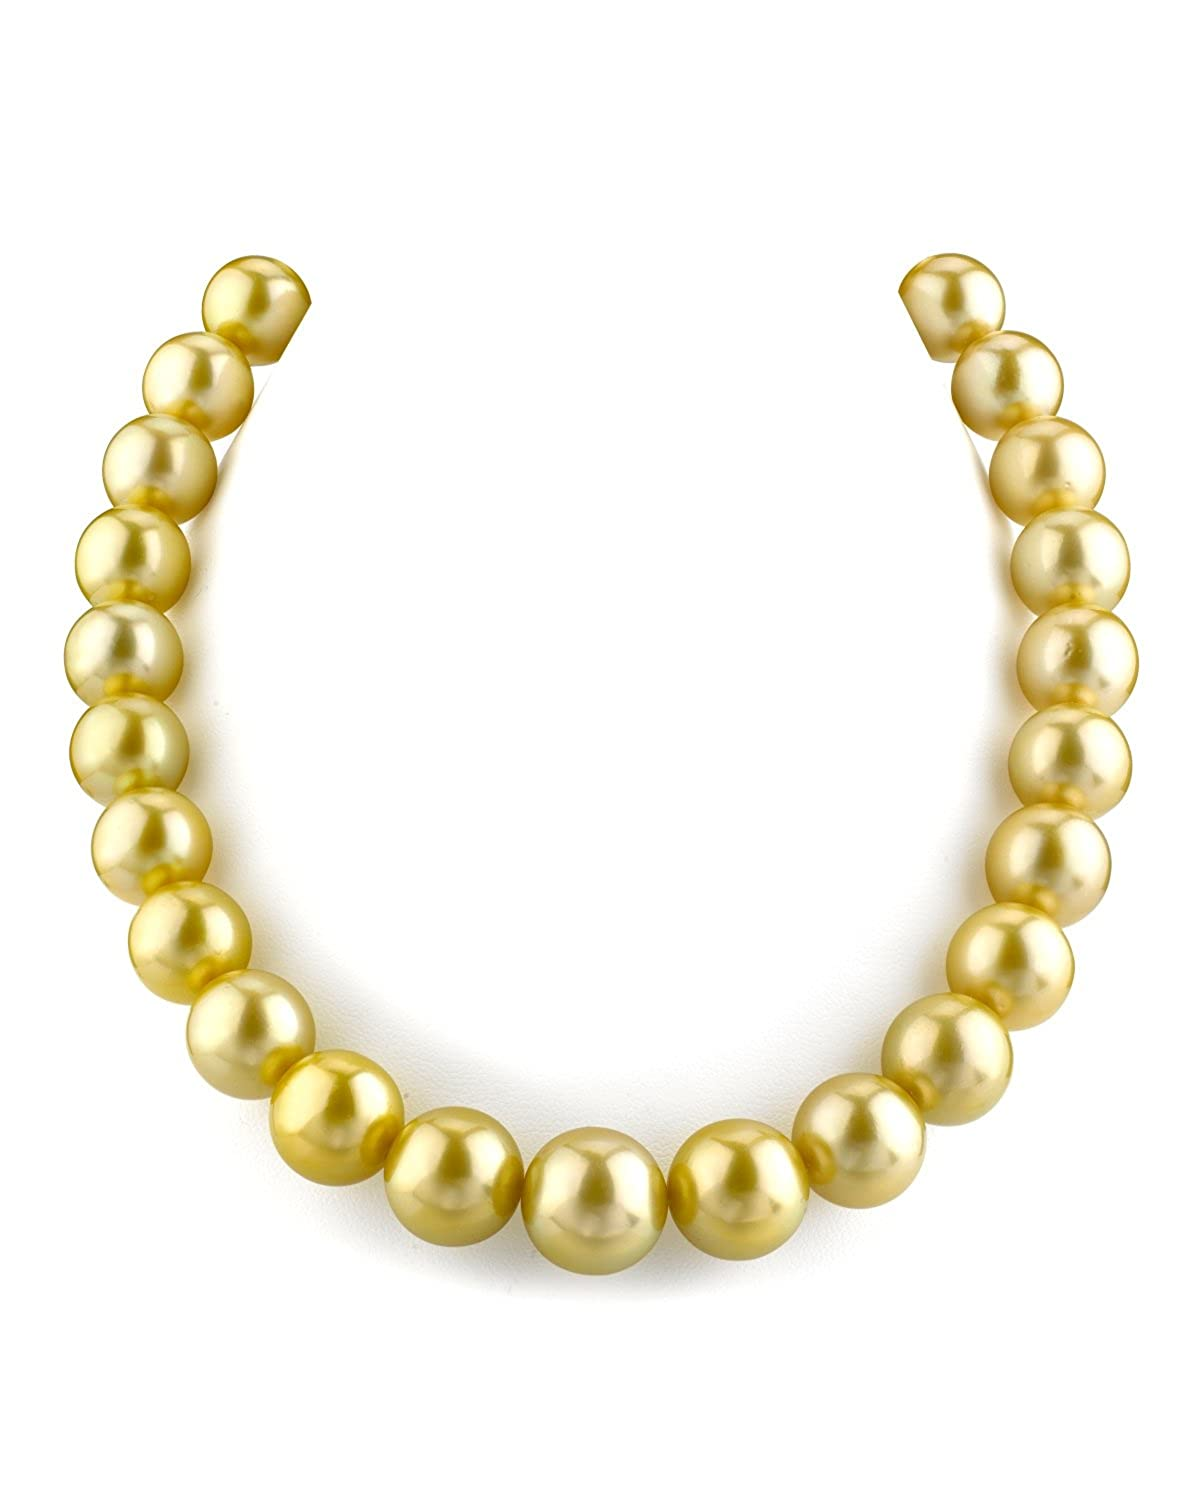 d1b57679acbfc Amazon.com: THE PEARL SOURCE 14K Gold 13-15mm AAAA Quality Round ...